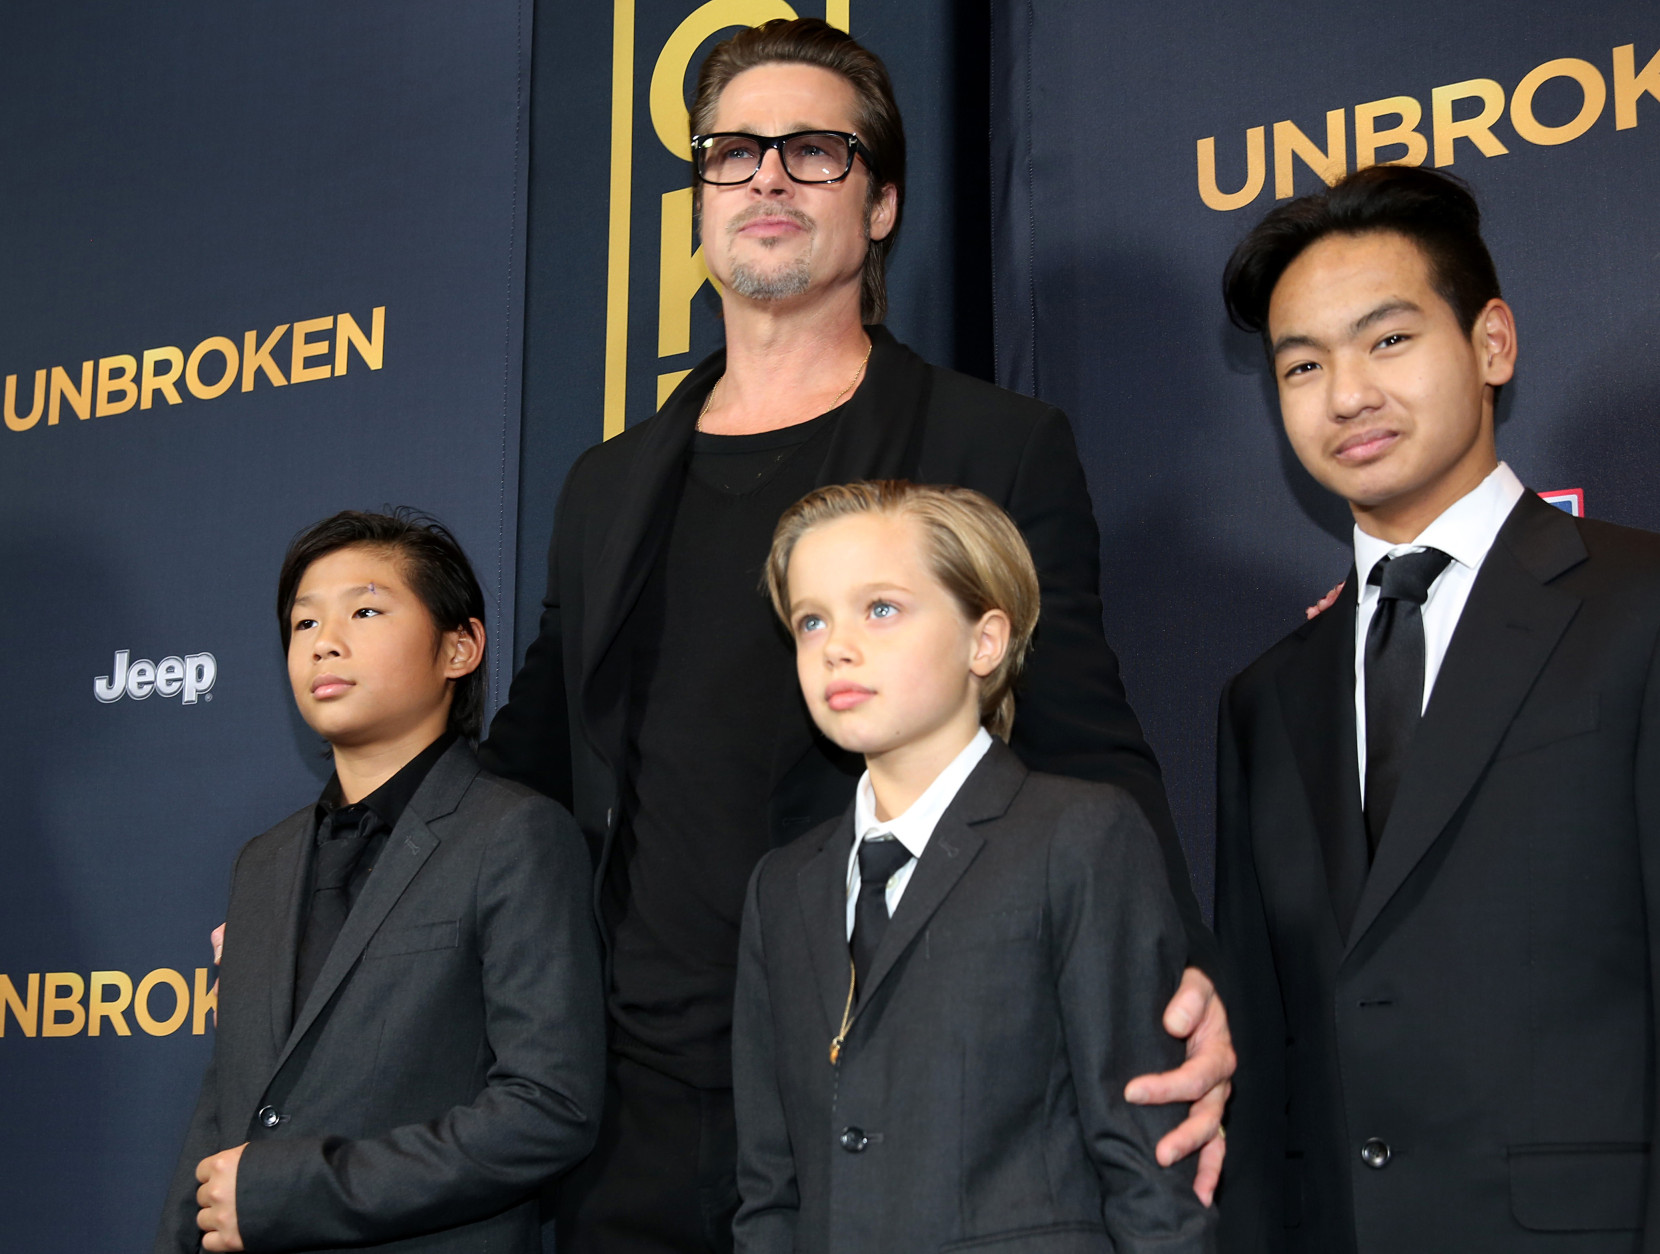 "Pax Jolie-Pitt, from left, Brad Pitt, Shiloh Jolie-Pitt and Maddox Jolie-Pitt arrive at the Los Angeles premiere of ""Unbroken"" at TCL Chinese Theatre on Monday, Dec. 15, 2014. (Photo by Matt Sayles/Invision/AP)"